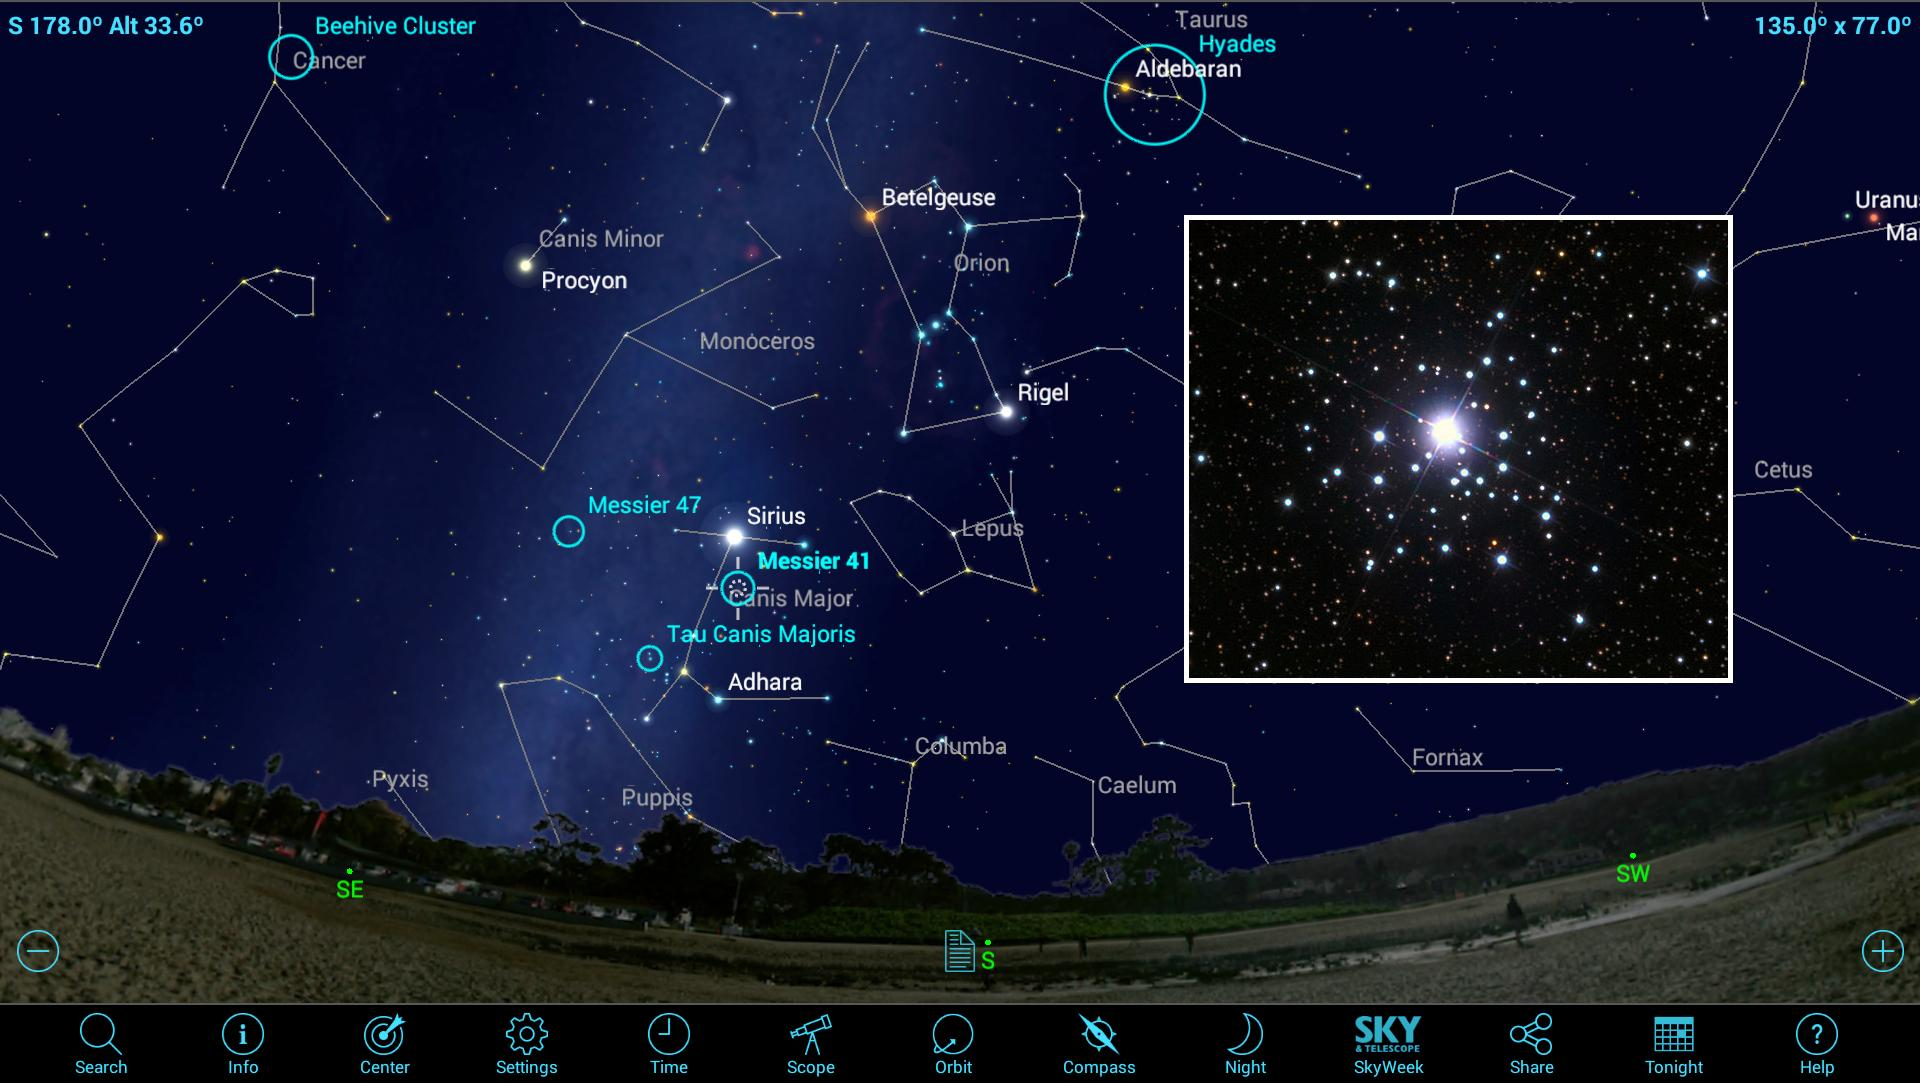 How to View Beautiful Open Star Clusters Using Mobile Apps